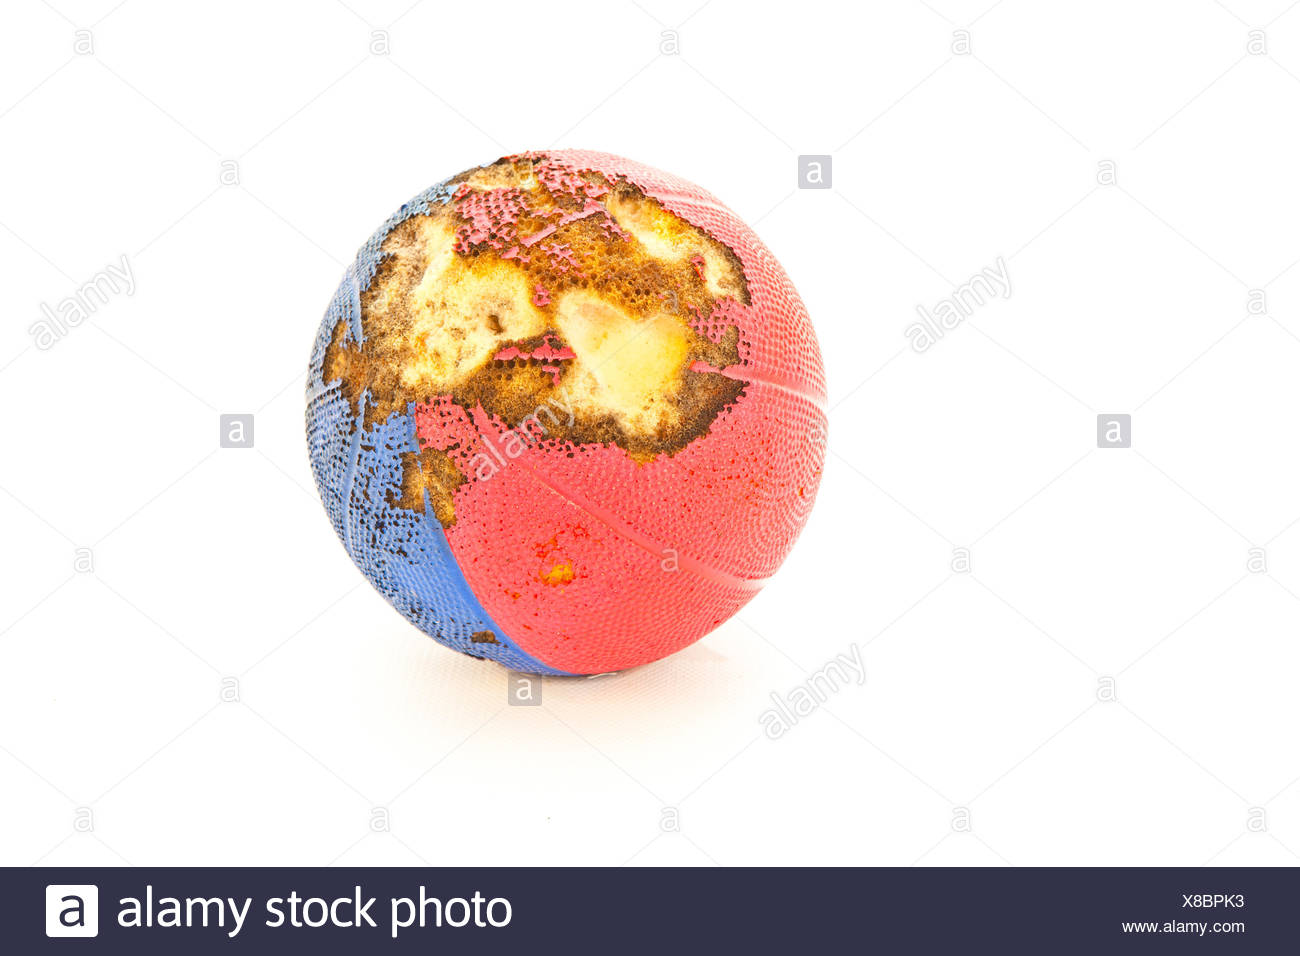 A foam ball which has been damaged by rodents - Stock Image